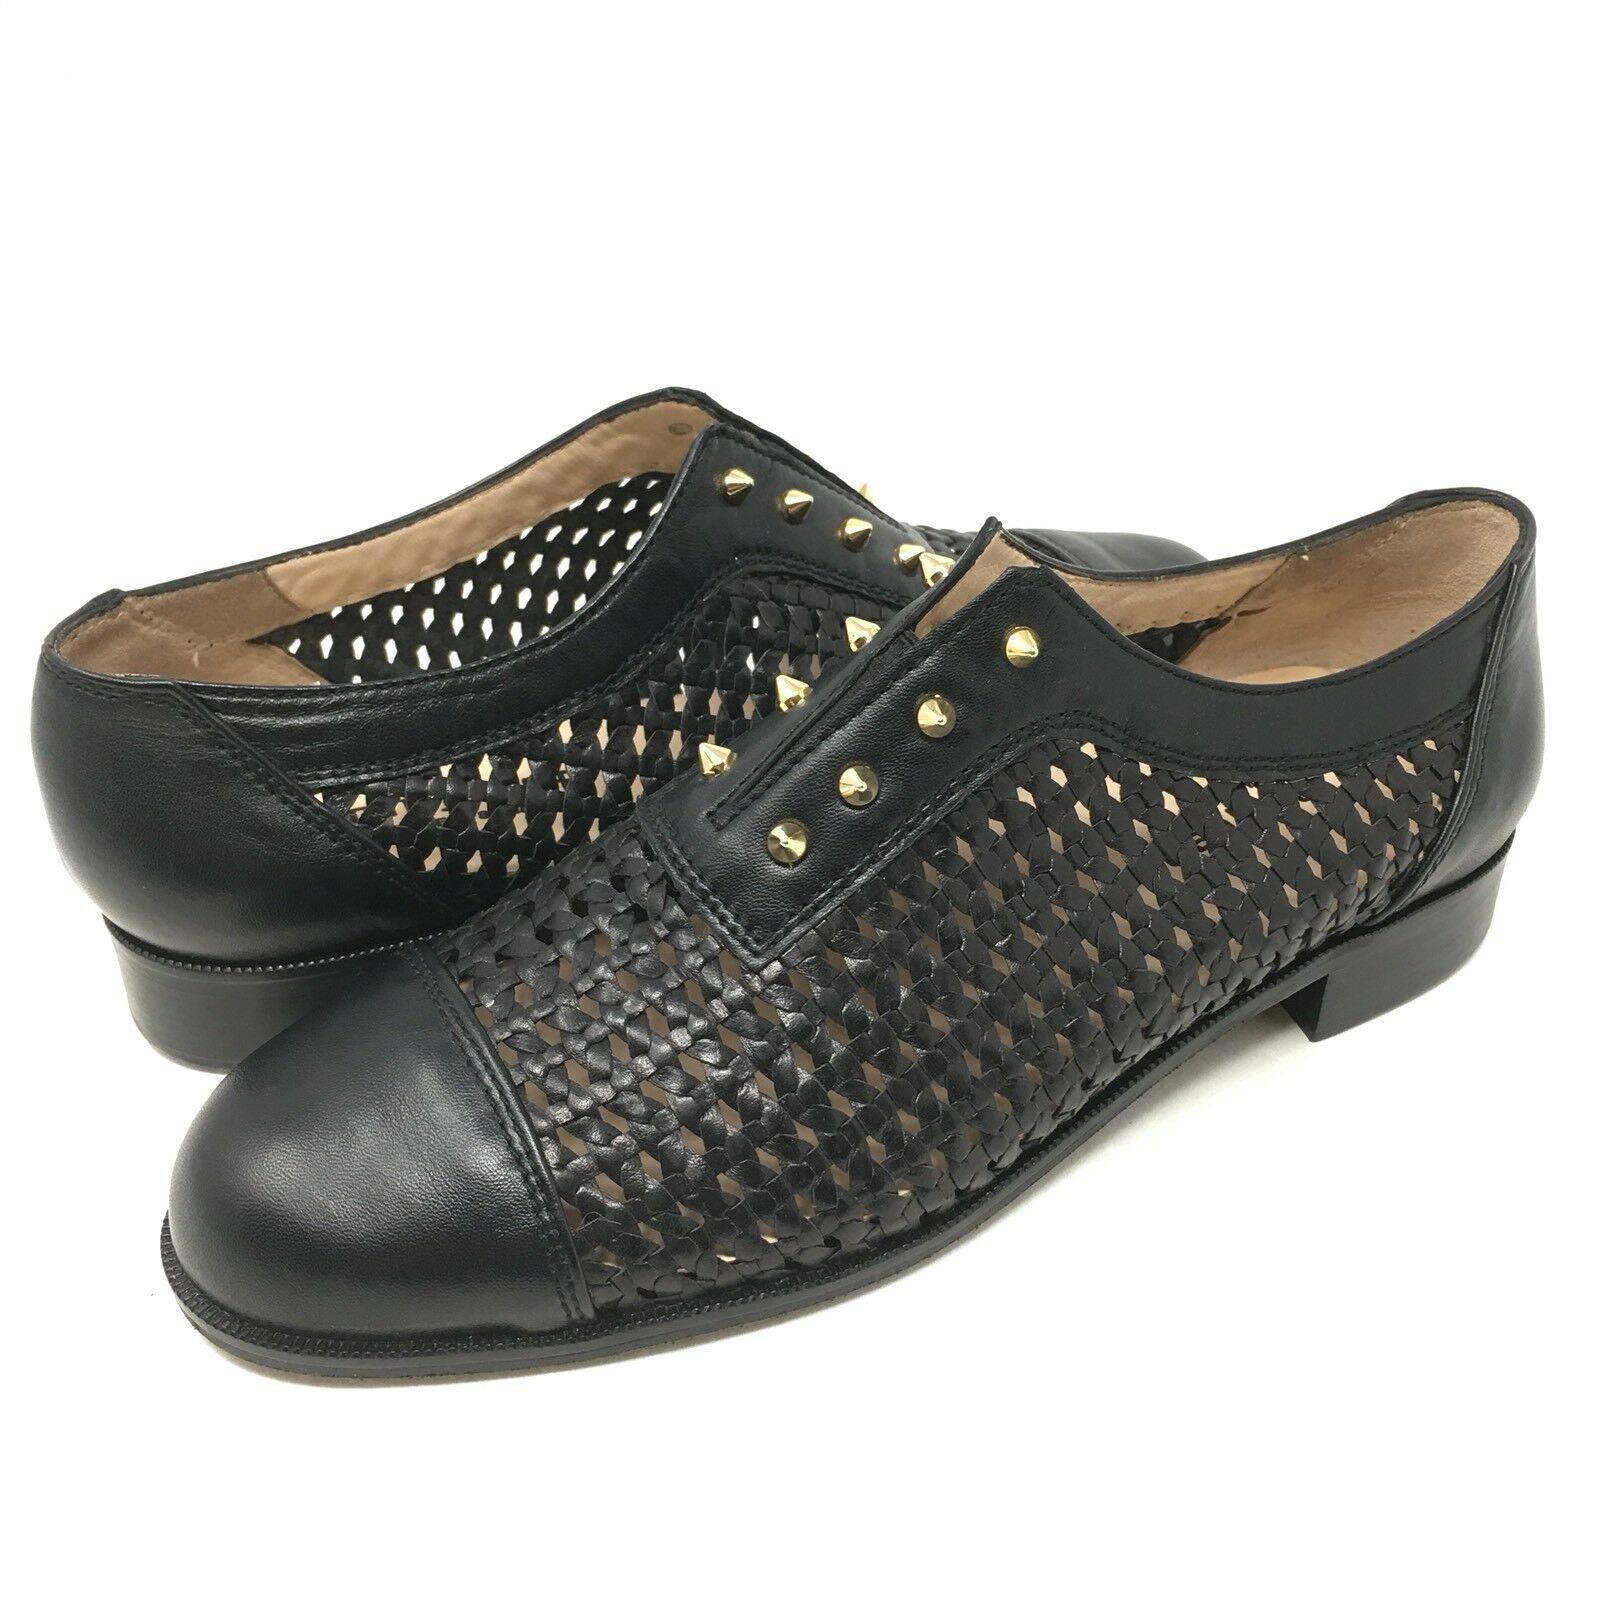 Jon Josef Mallorca Weaved Cap Women's Toe Studded Leather Loafer Women's Cap Size 8M fe91a8